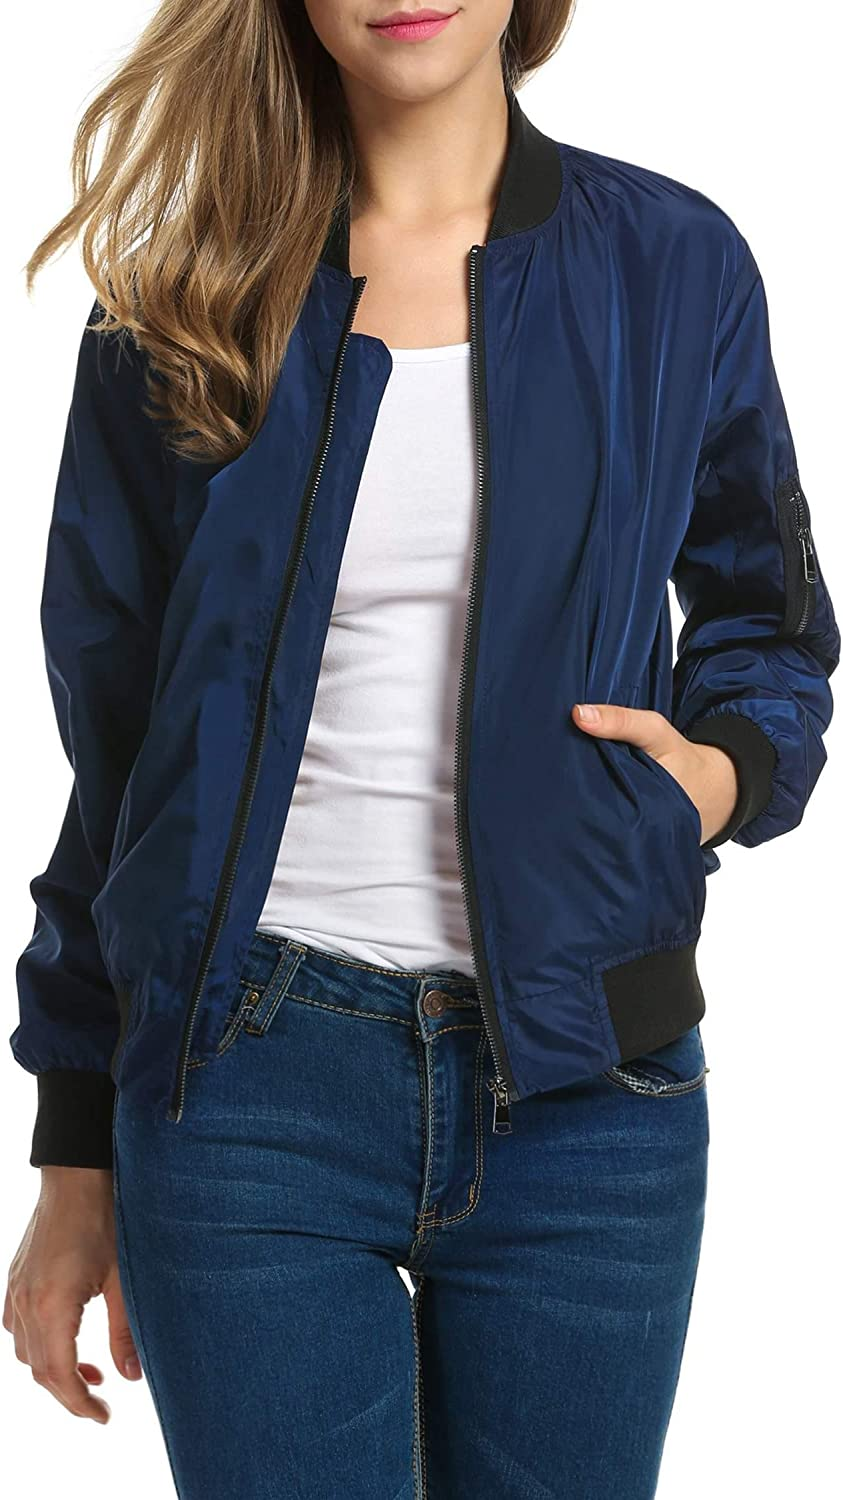 Zeagoo Womens Jacket Plus Size Bomber Jackets Lightweight with Pockets Zip Up Quilted Casual Coat Outwear(Navy Blue, XX-Large)